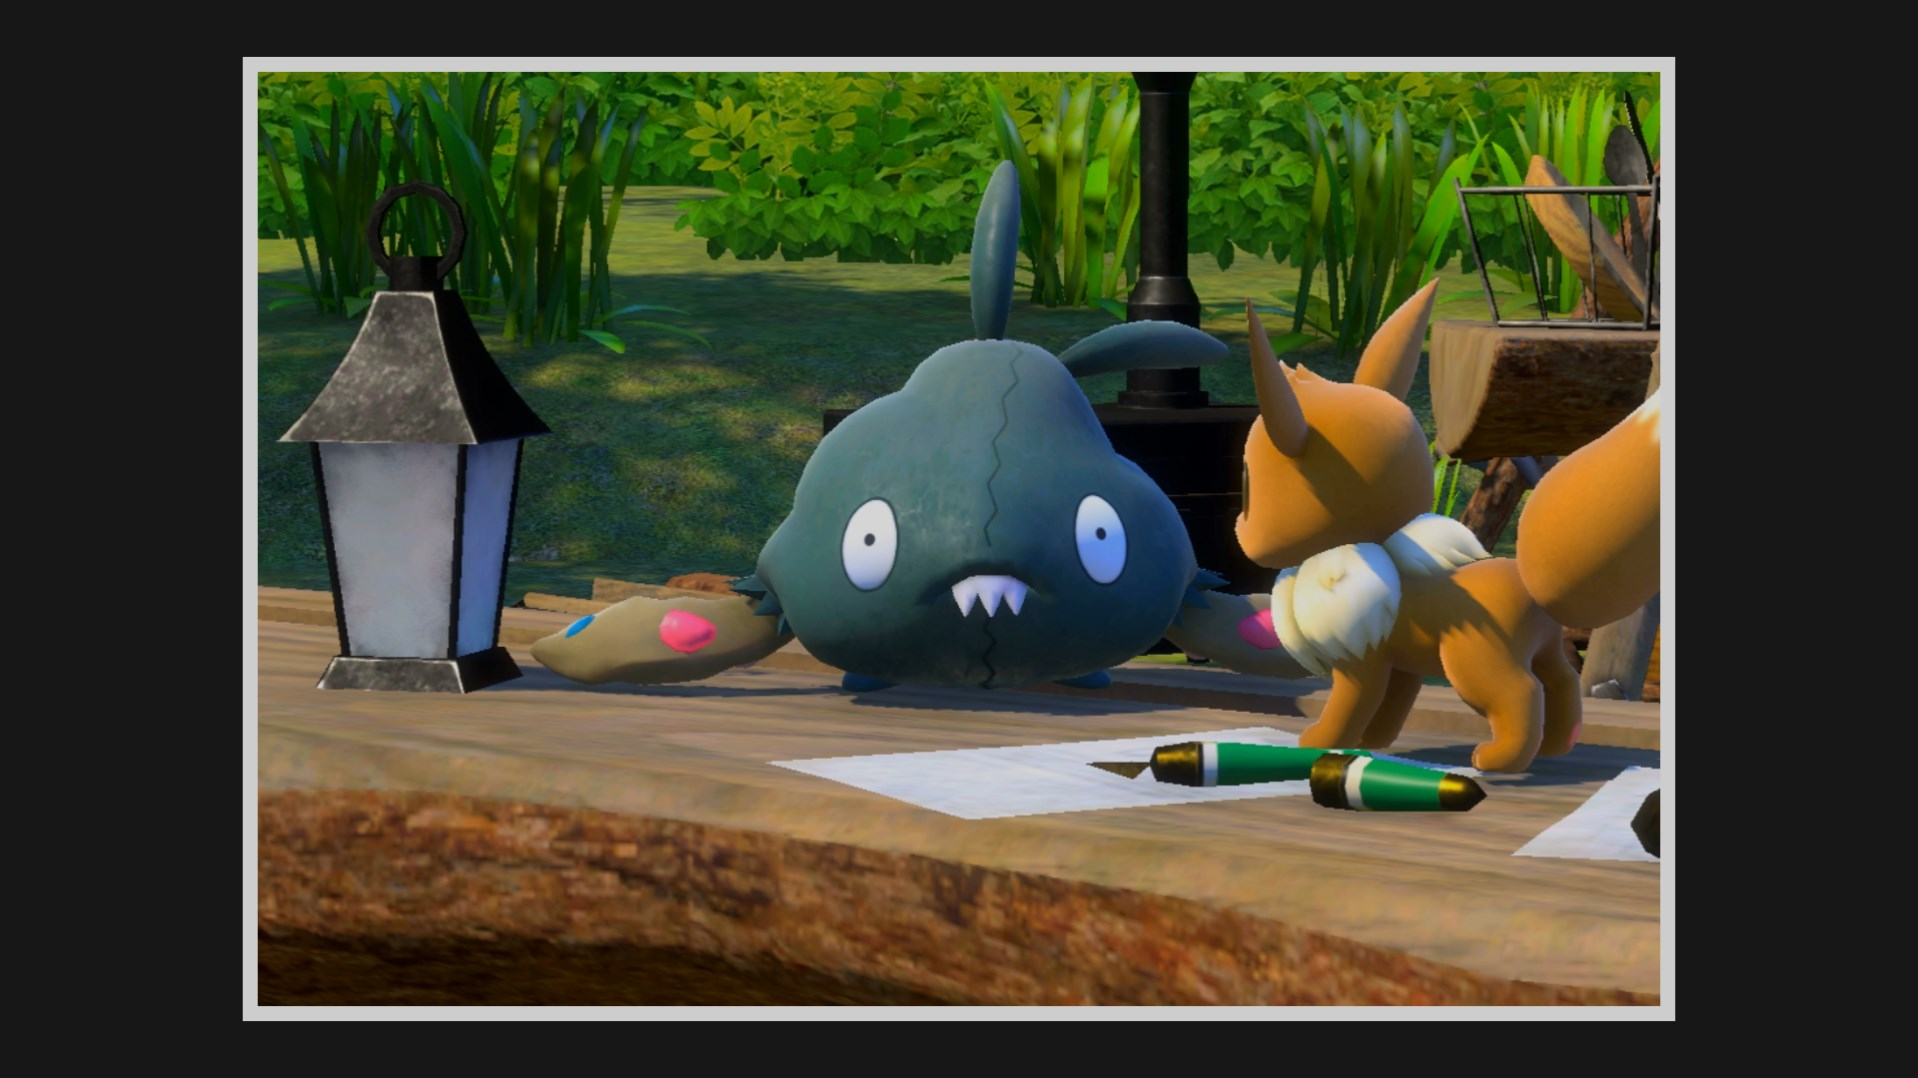 A Trubbish stares at the camera while standing next to an Eevee on a table